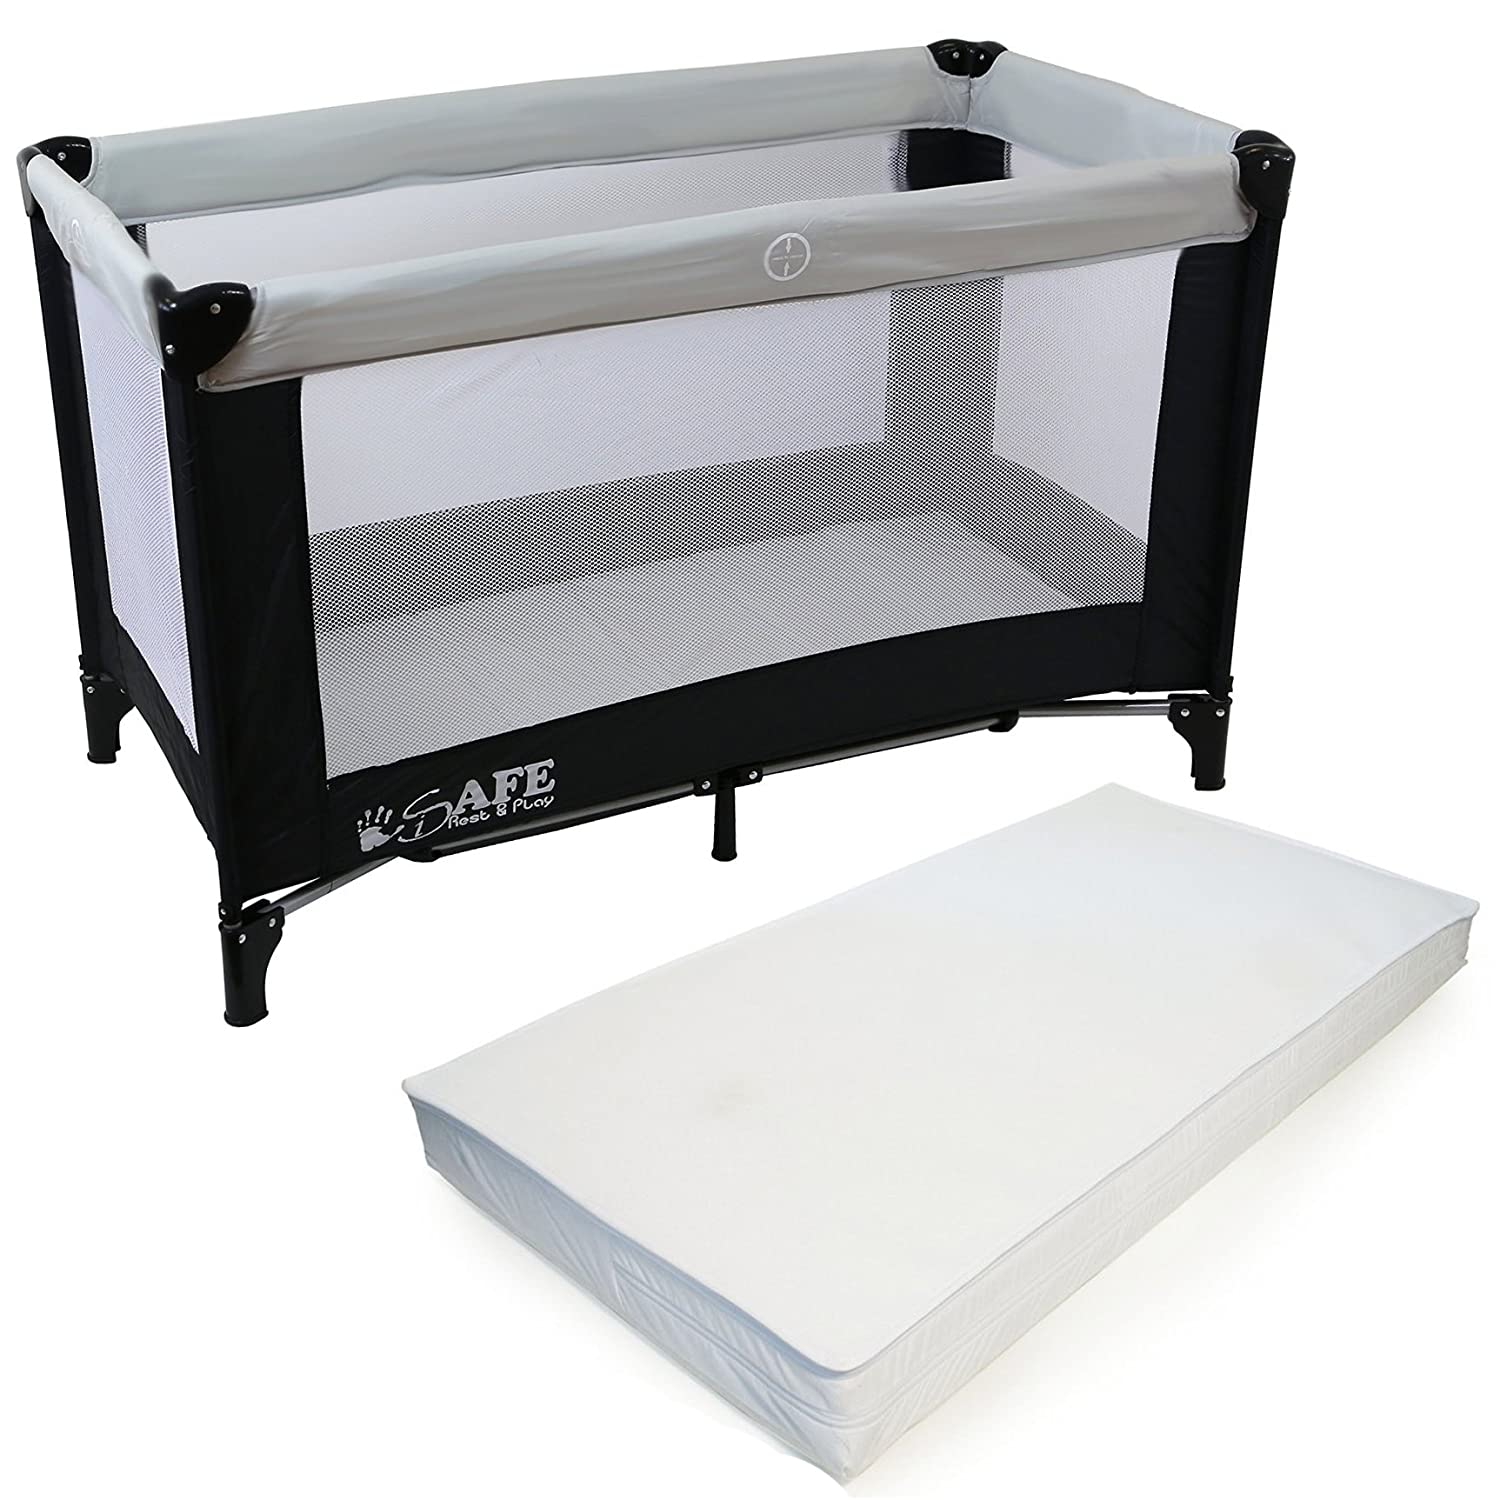 iSafe Rest & Play Luxury Travel Cot/Playpen - MoonStone (Black/Grey) 120 cm x 60 cm Complete With Mattress iSaf-RestPl